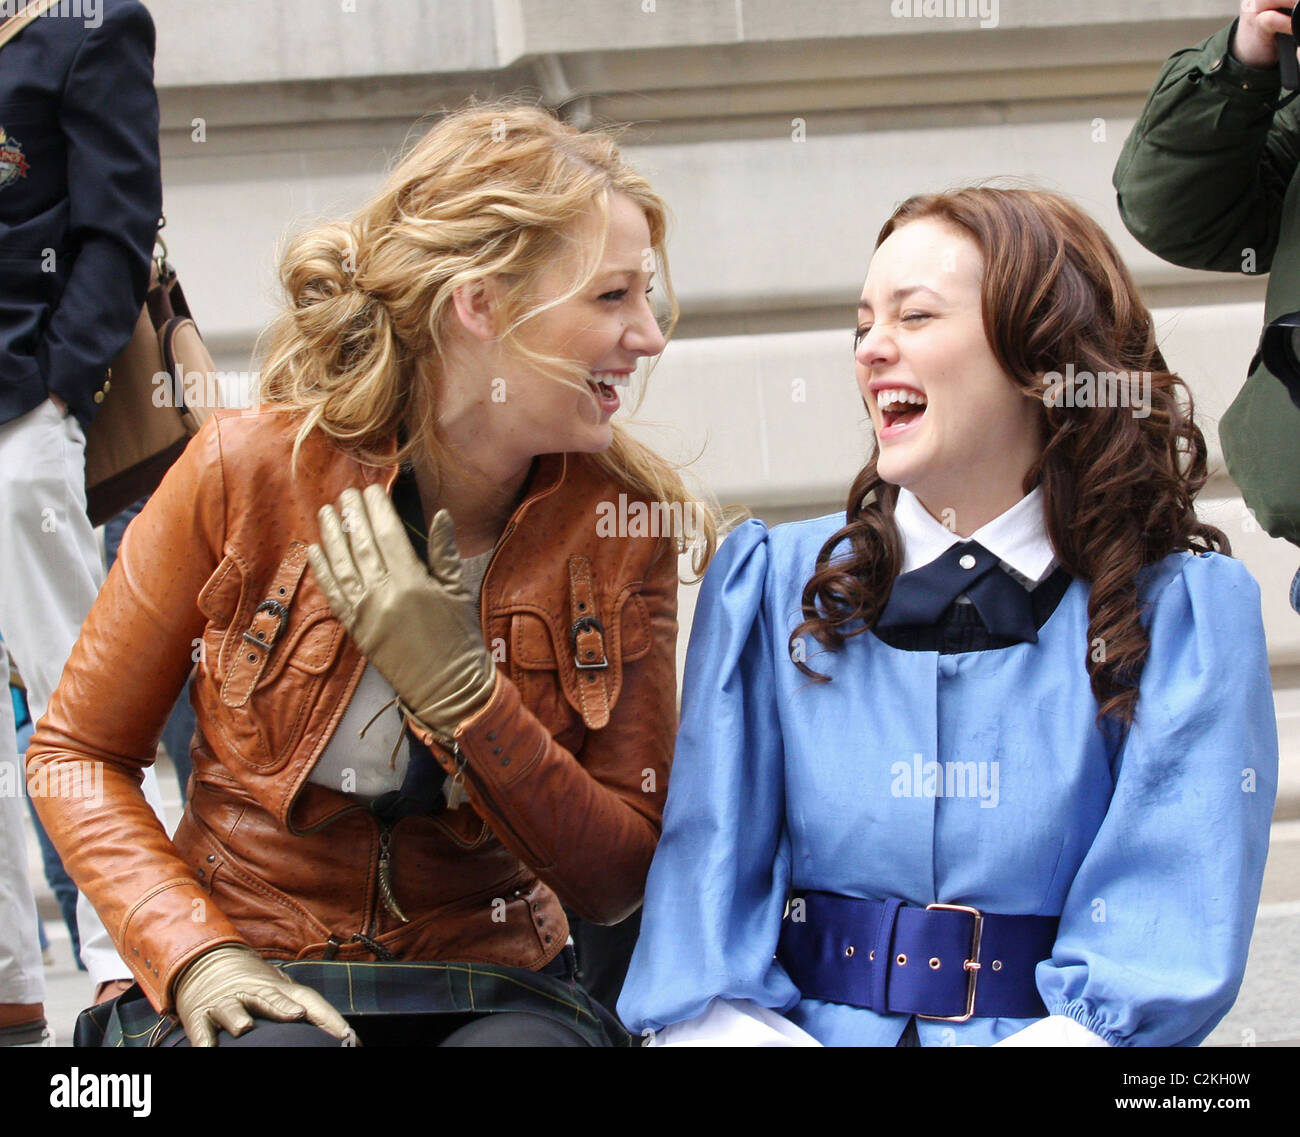 Blake Lively Leighton Meester At The Film Set For CWs Gossip - Film museums in usa